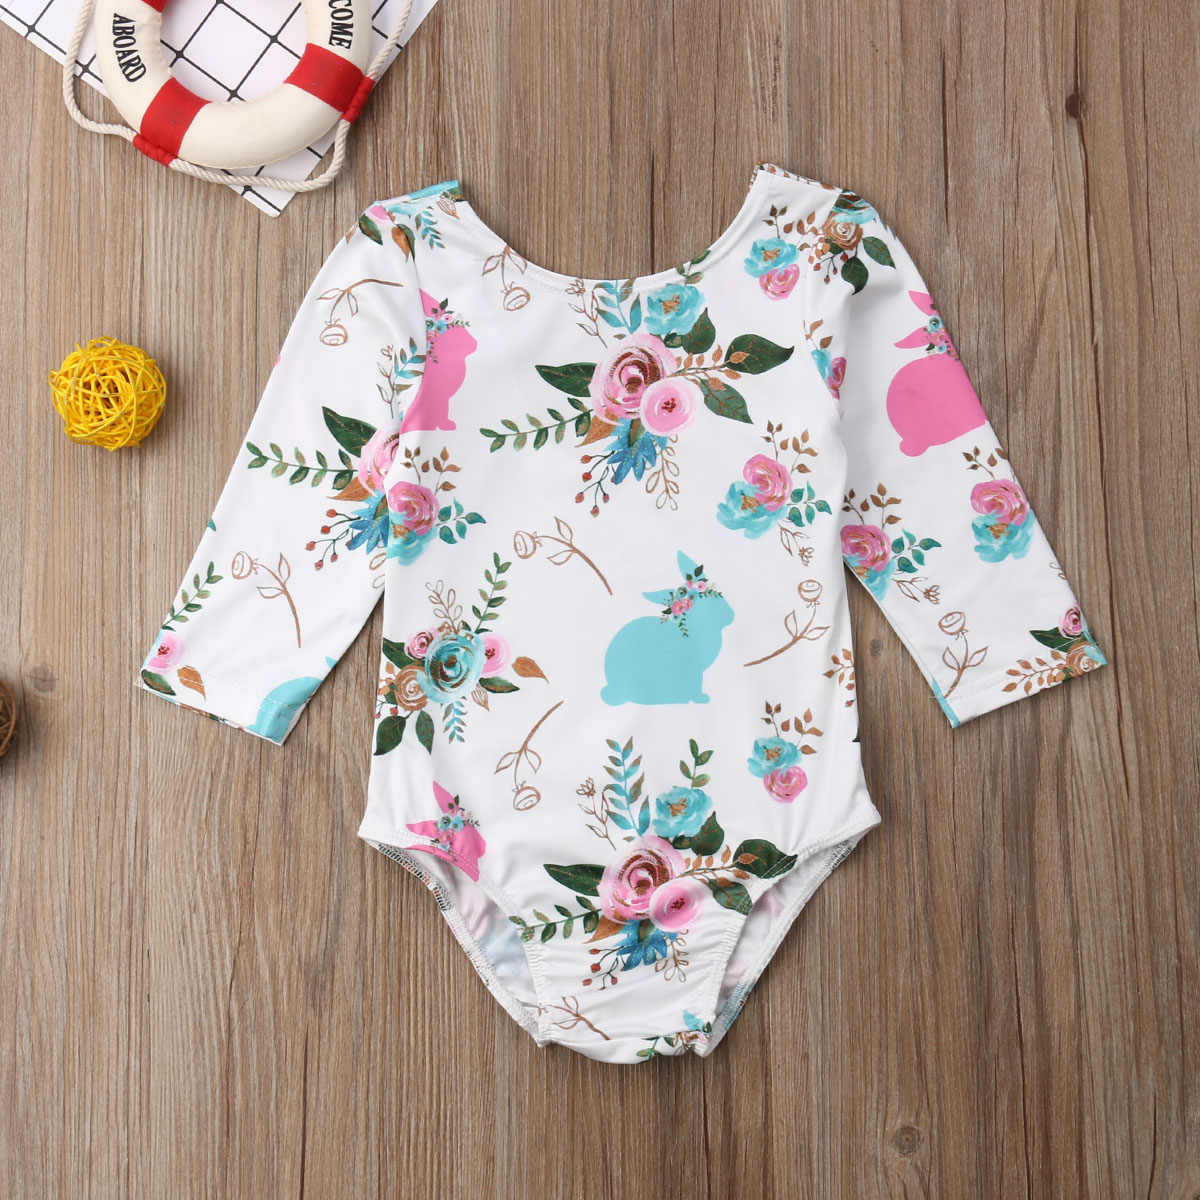 5ae77db4618 ... Cute Bunny Newborn Infant Baby Girl Rompers Pom Pom Long Sleeve Flower  Jumpsuit Playsuit For Baby ...